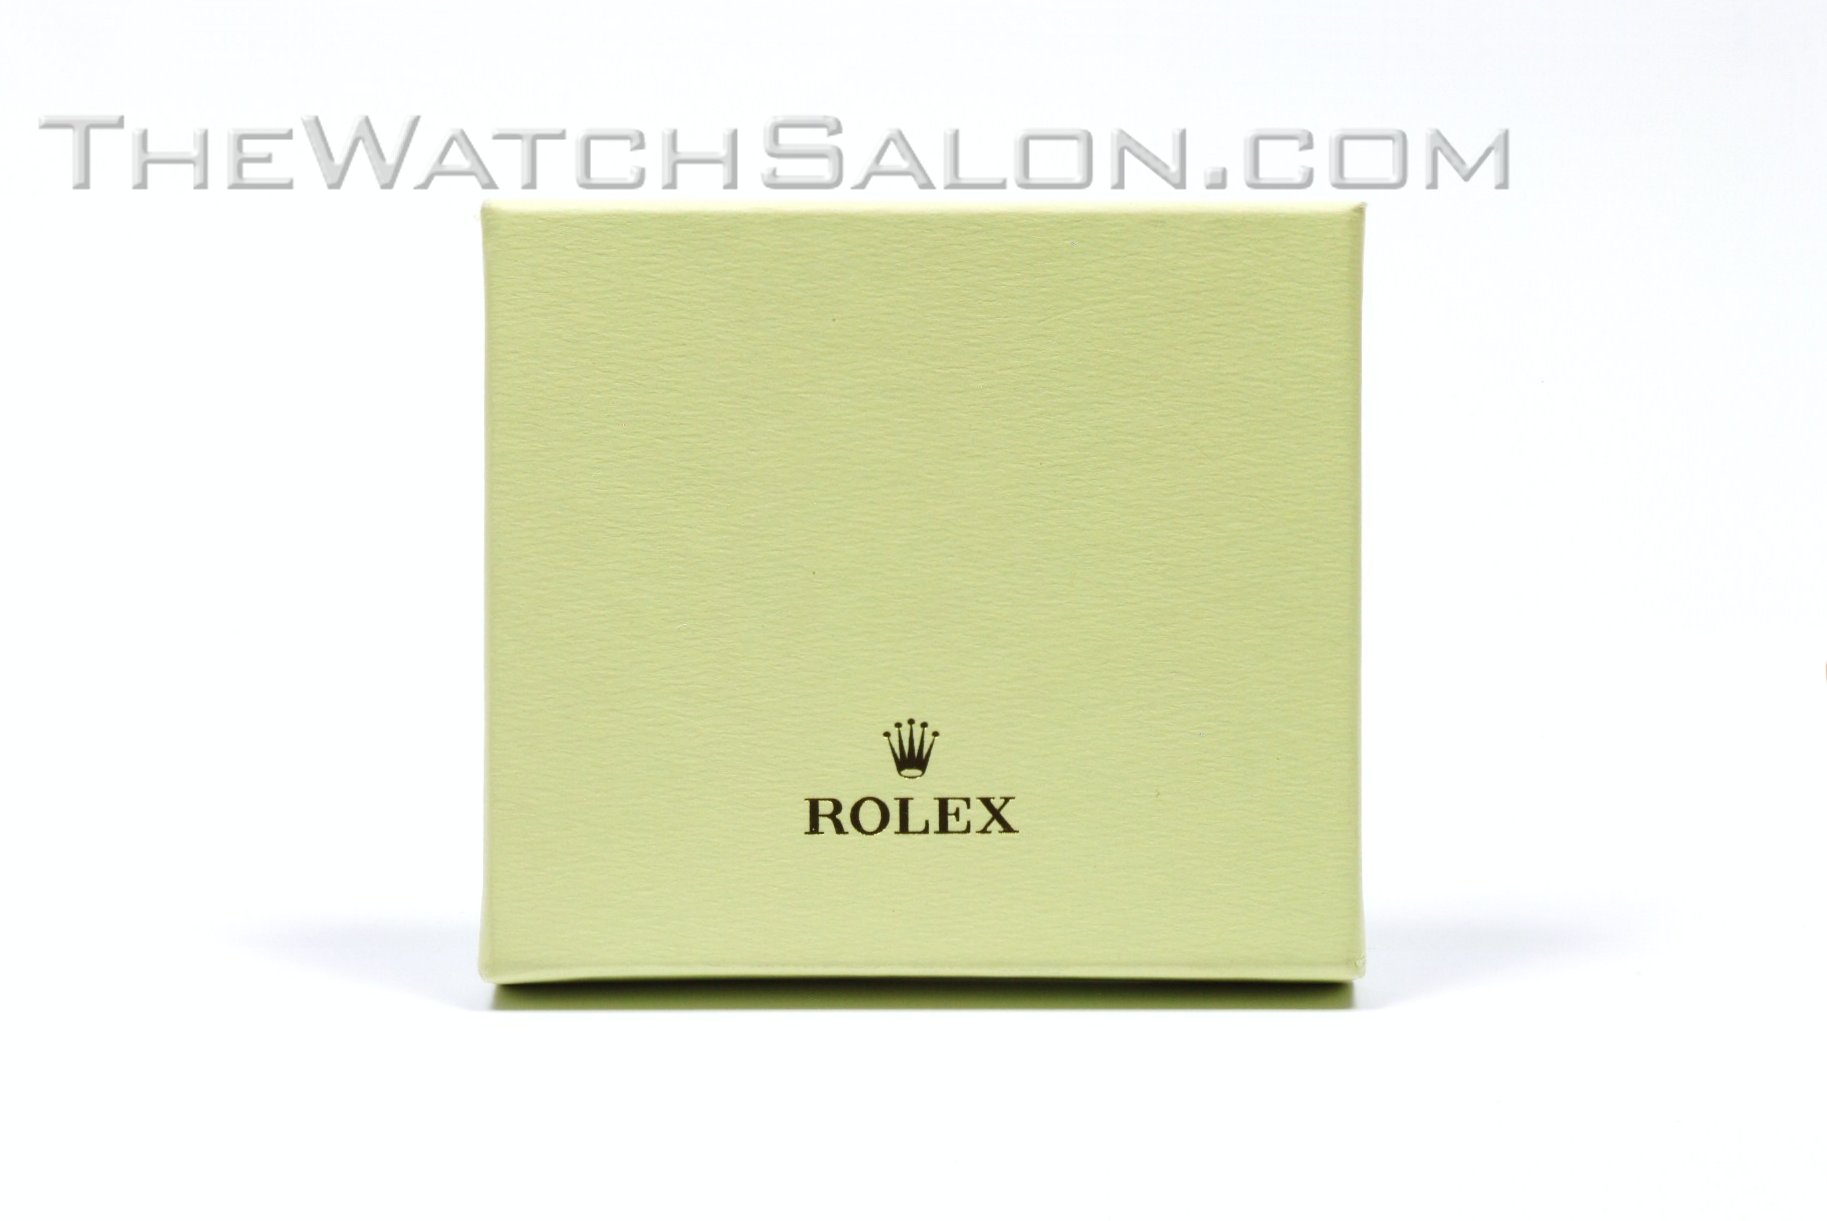 rolex green purse wallet boxed